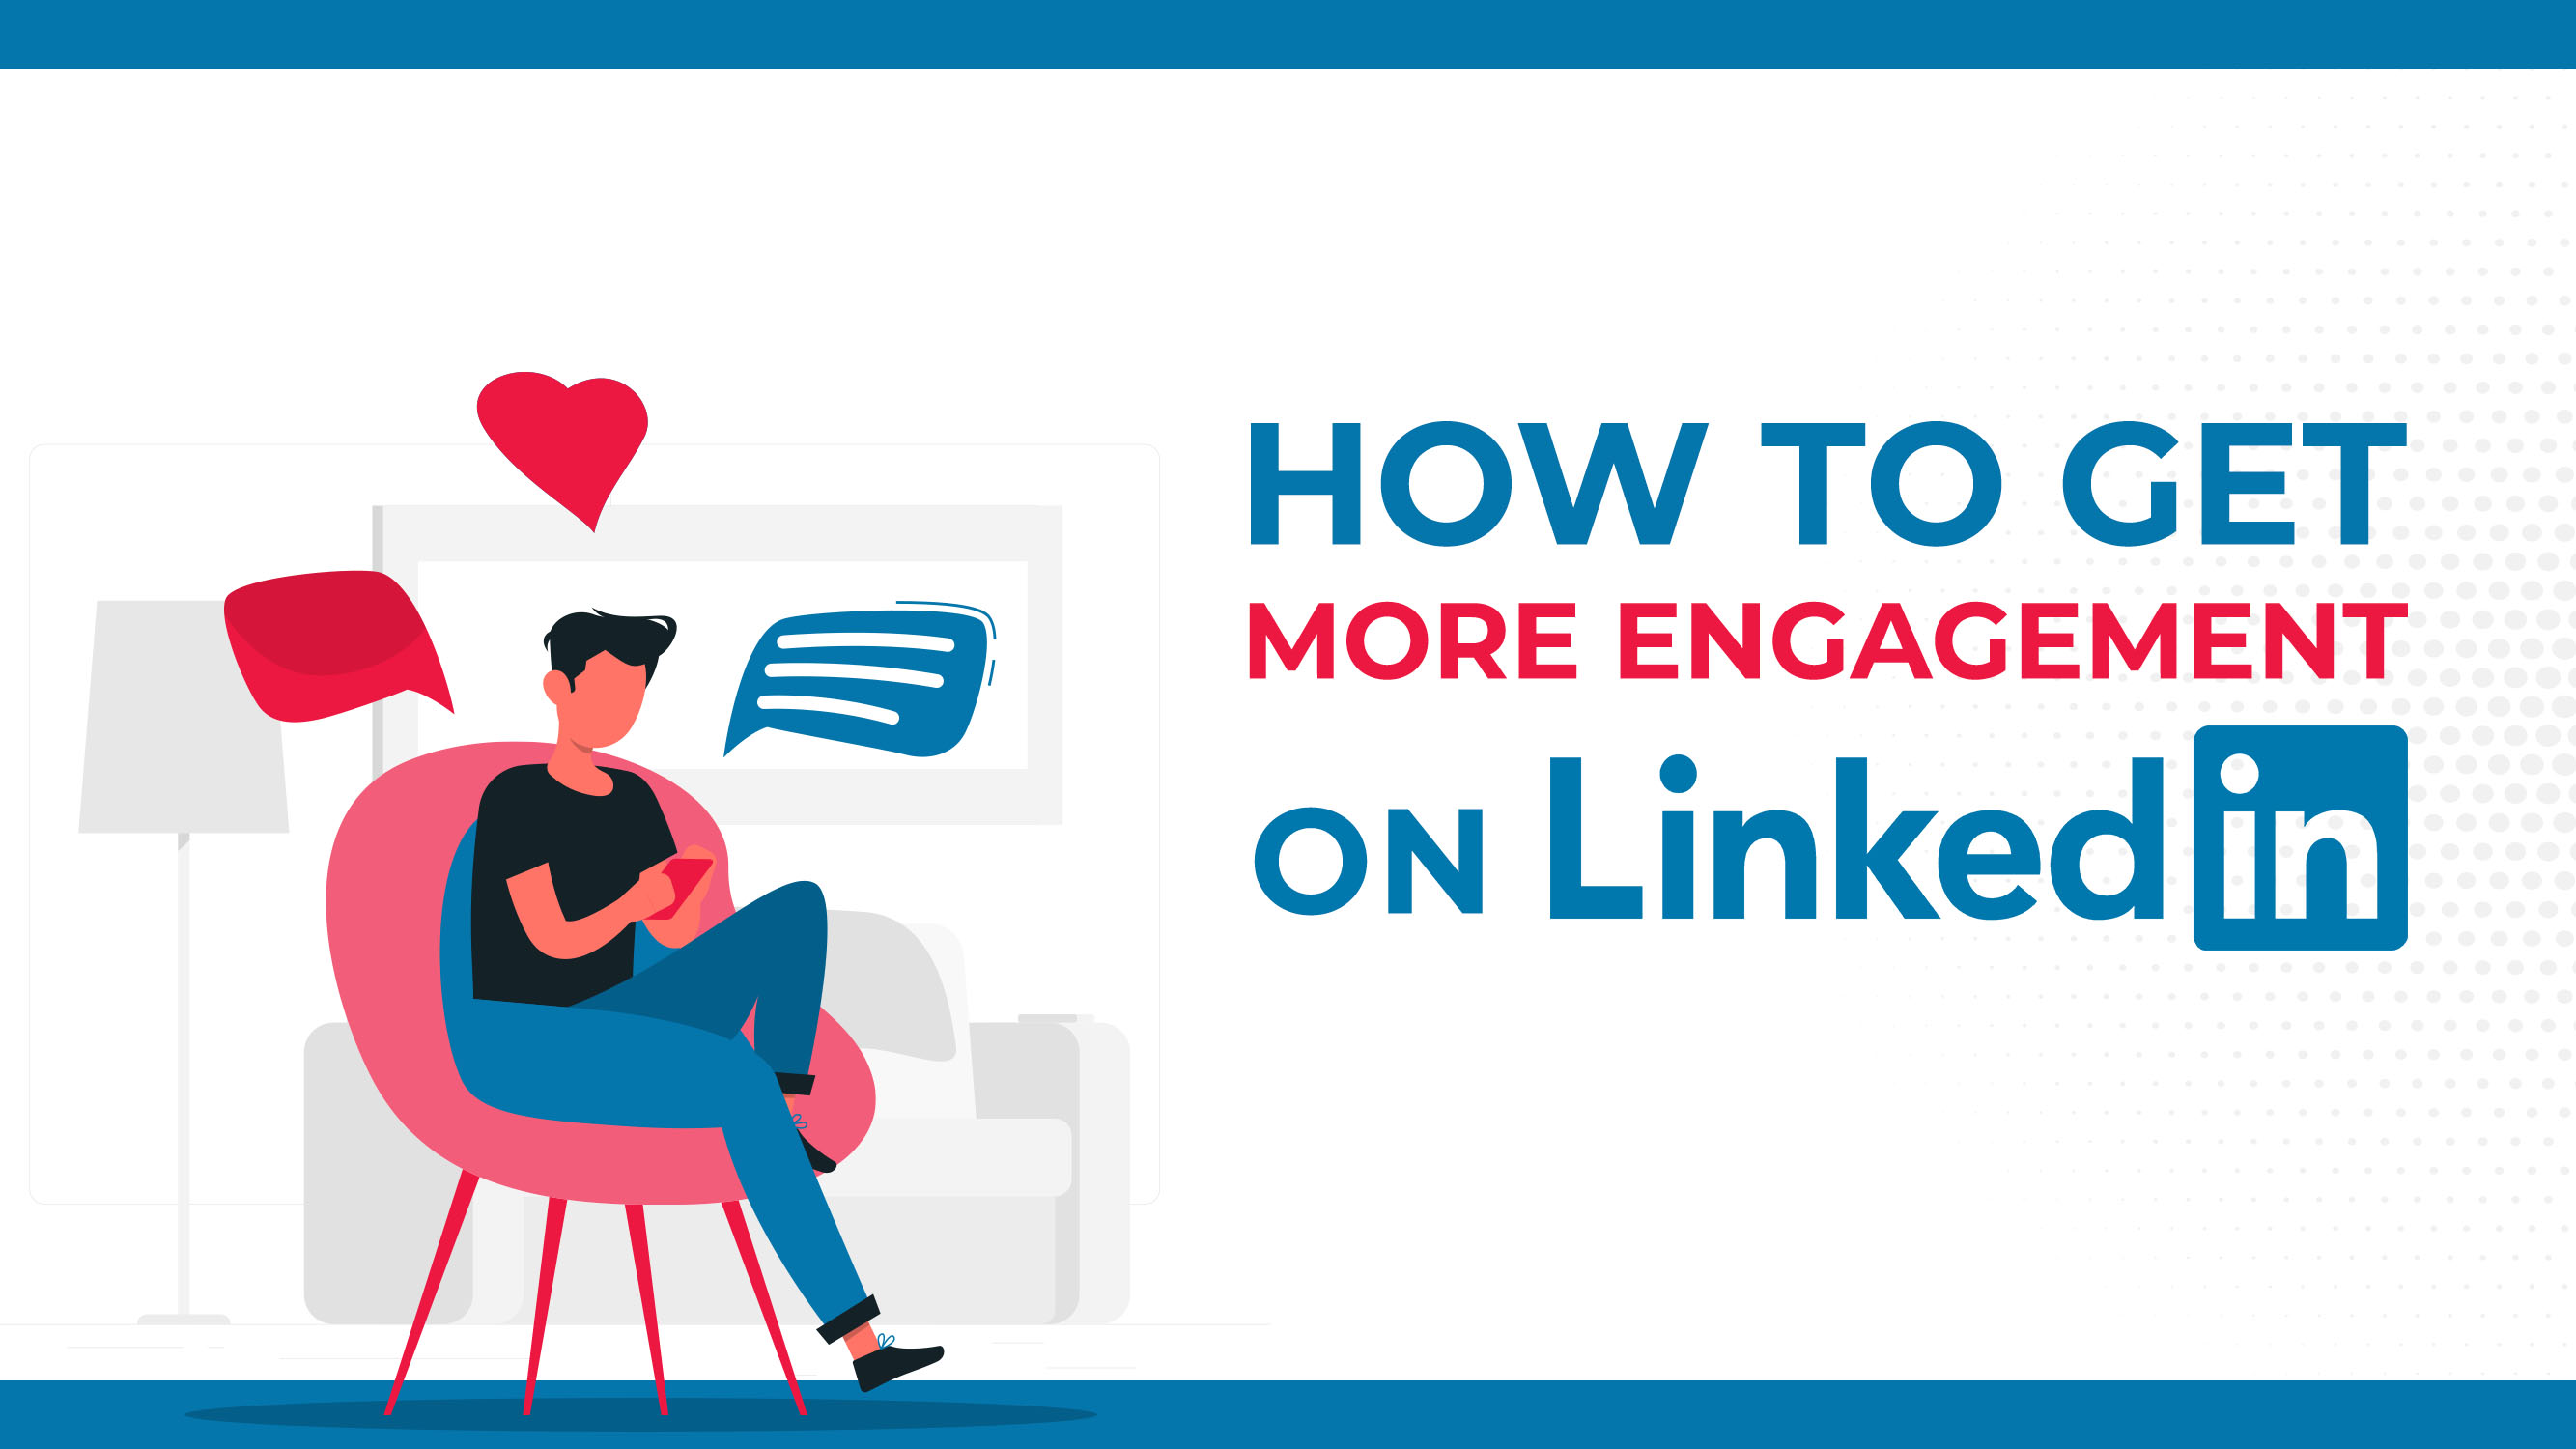 How To Get More Engagement On LinkedIn